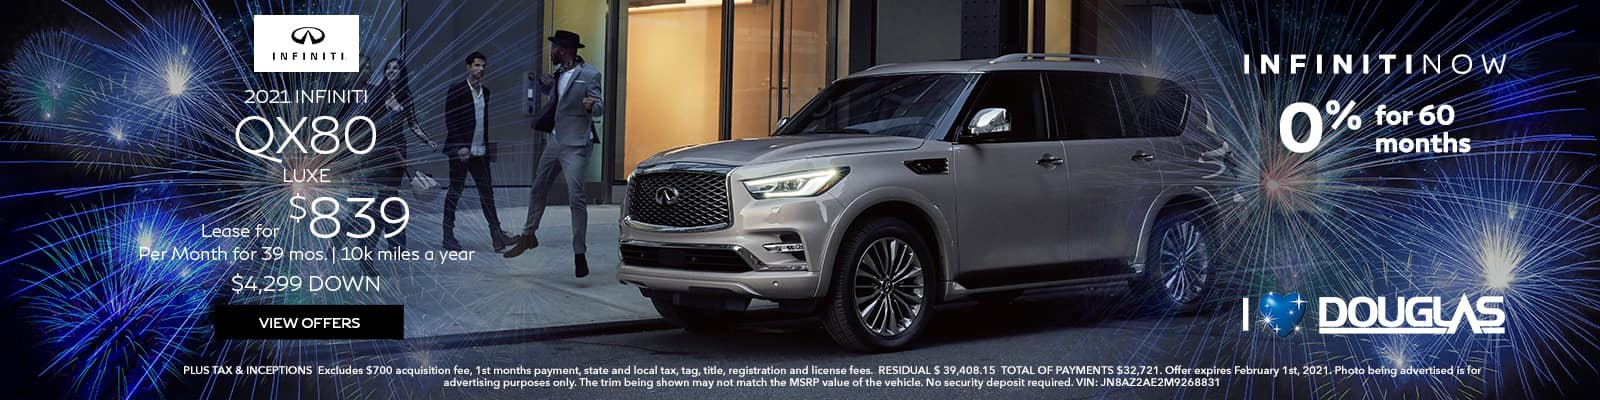 final-douglas-infiniti-january-qx80-special-banner-1600×400